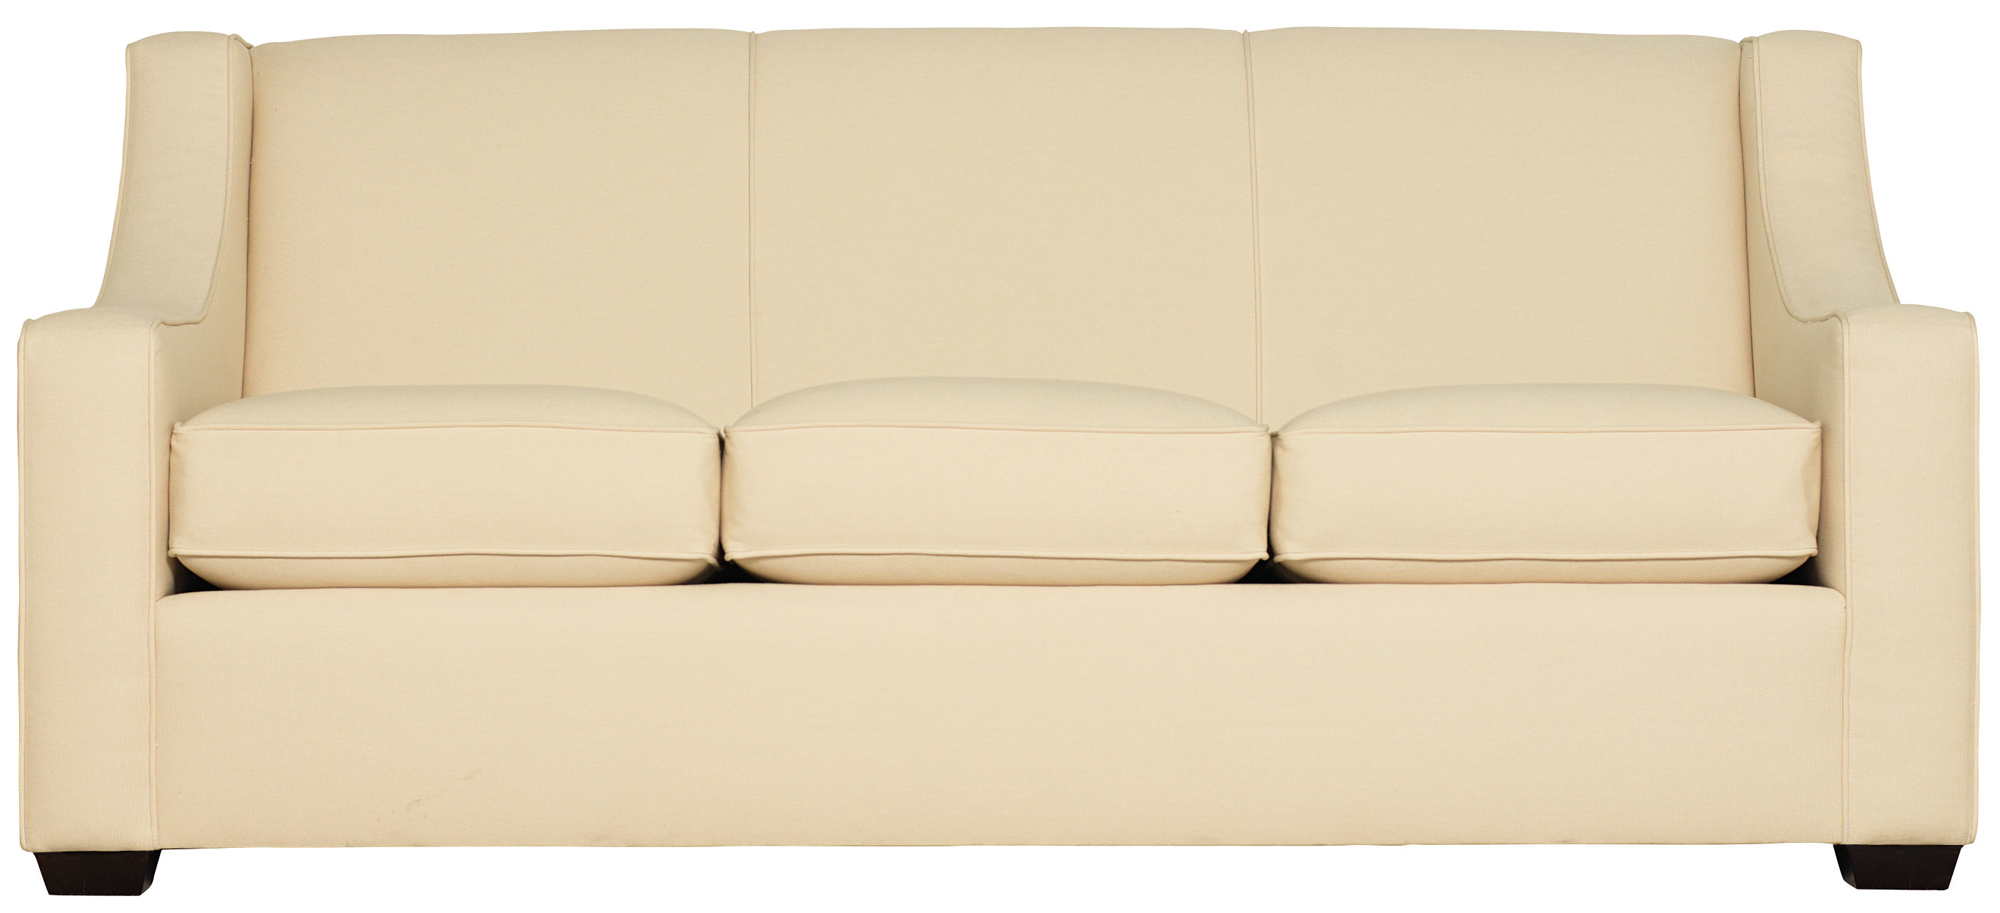 Pleasant Sofa Sleeper Queen Bernhardt Hospitality Download Free Architecture Designs Sospemadebymaigaardcom